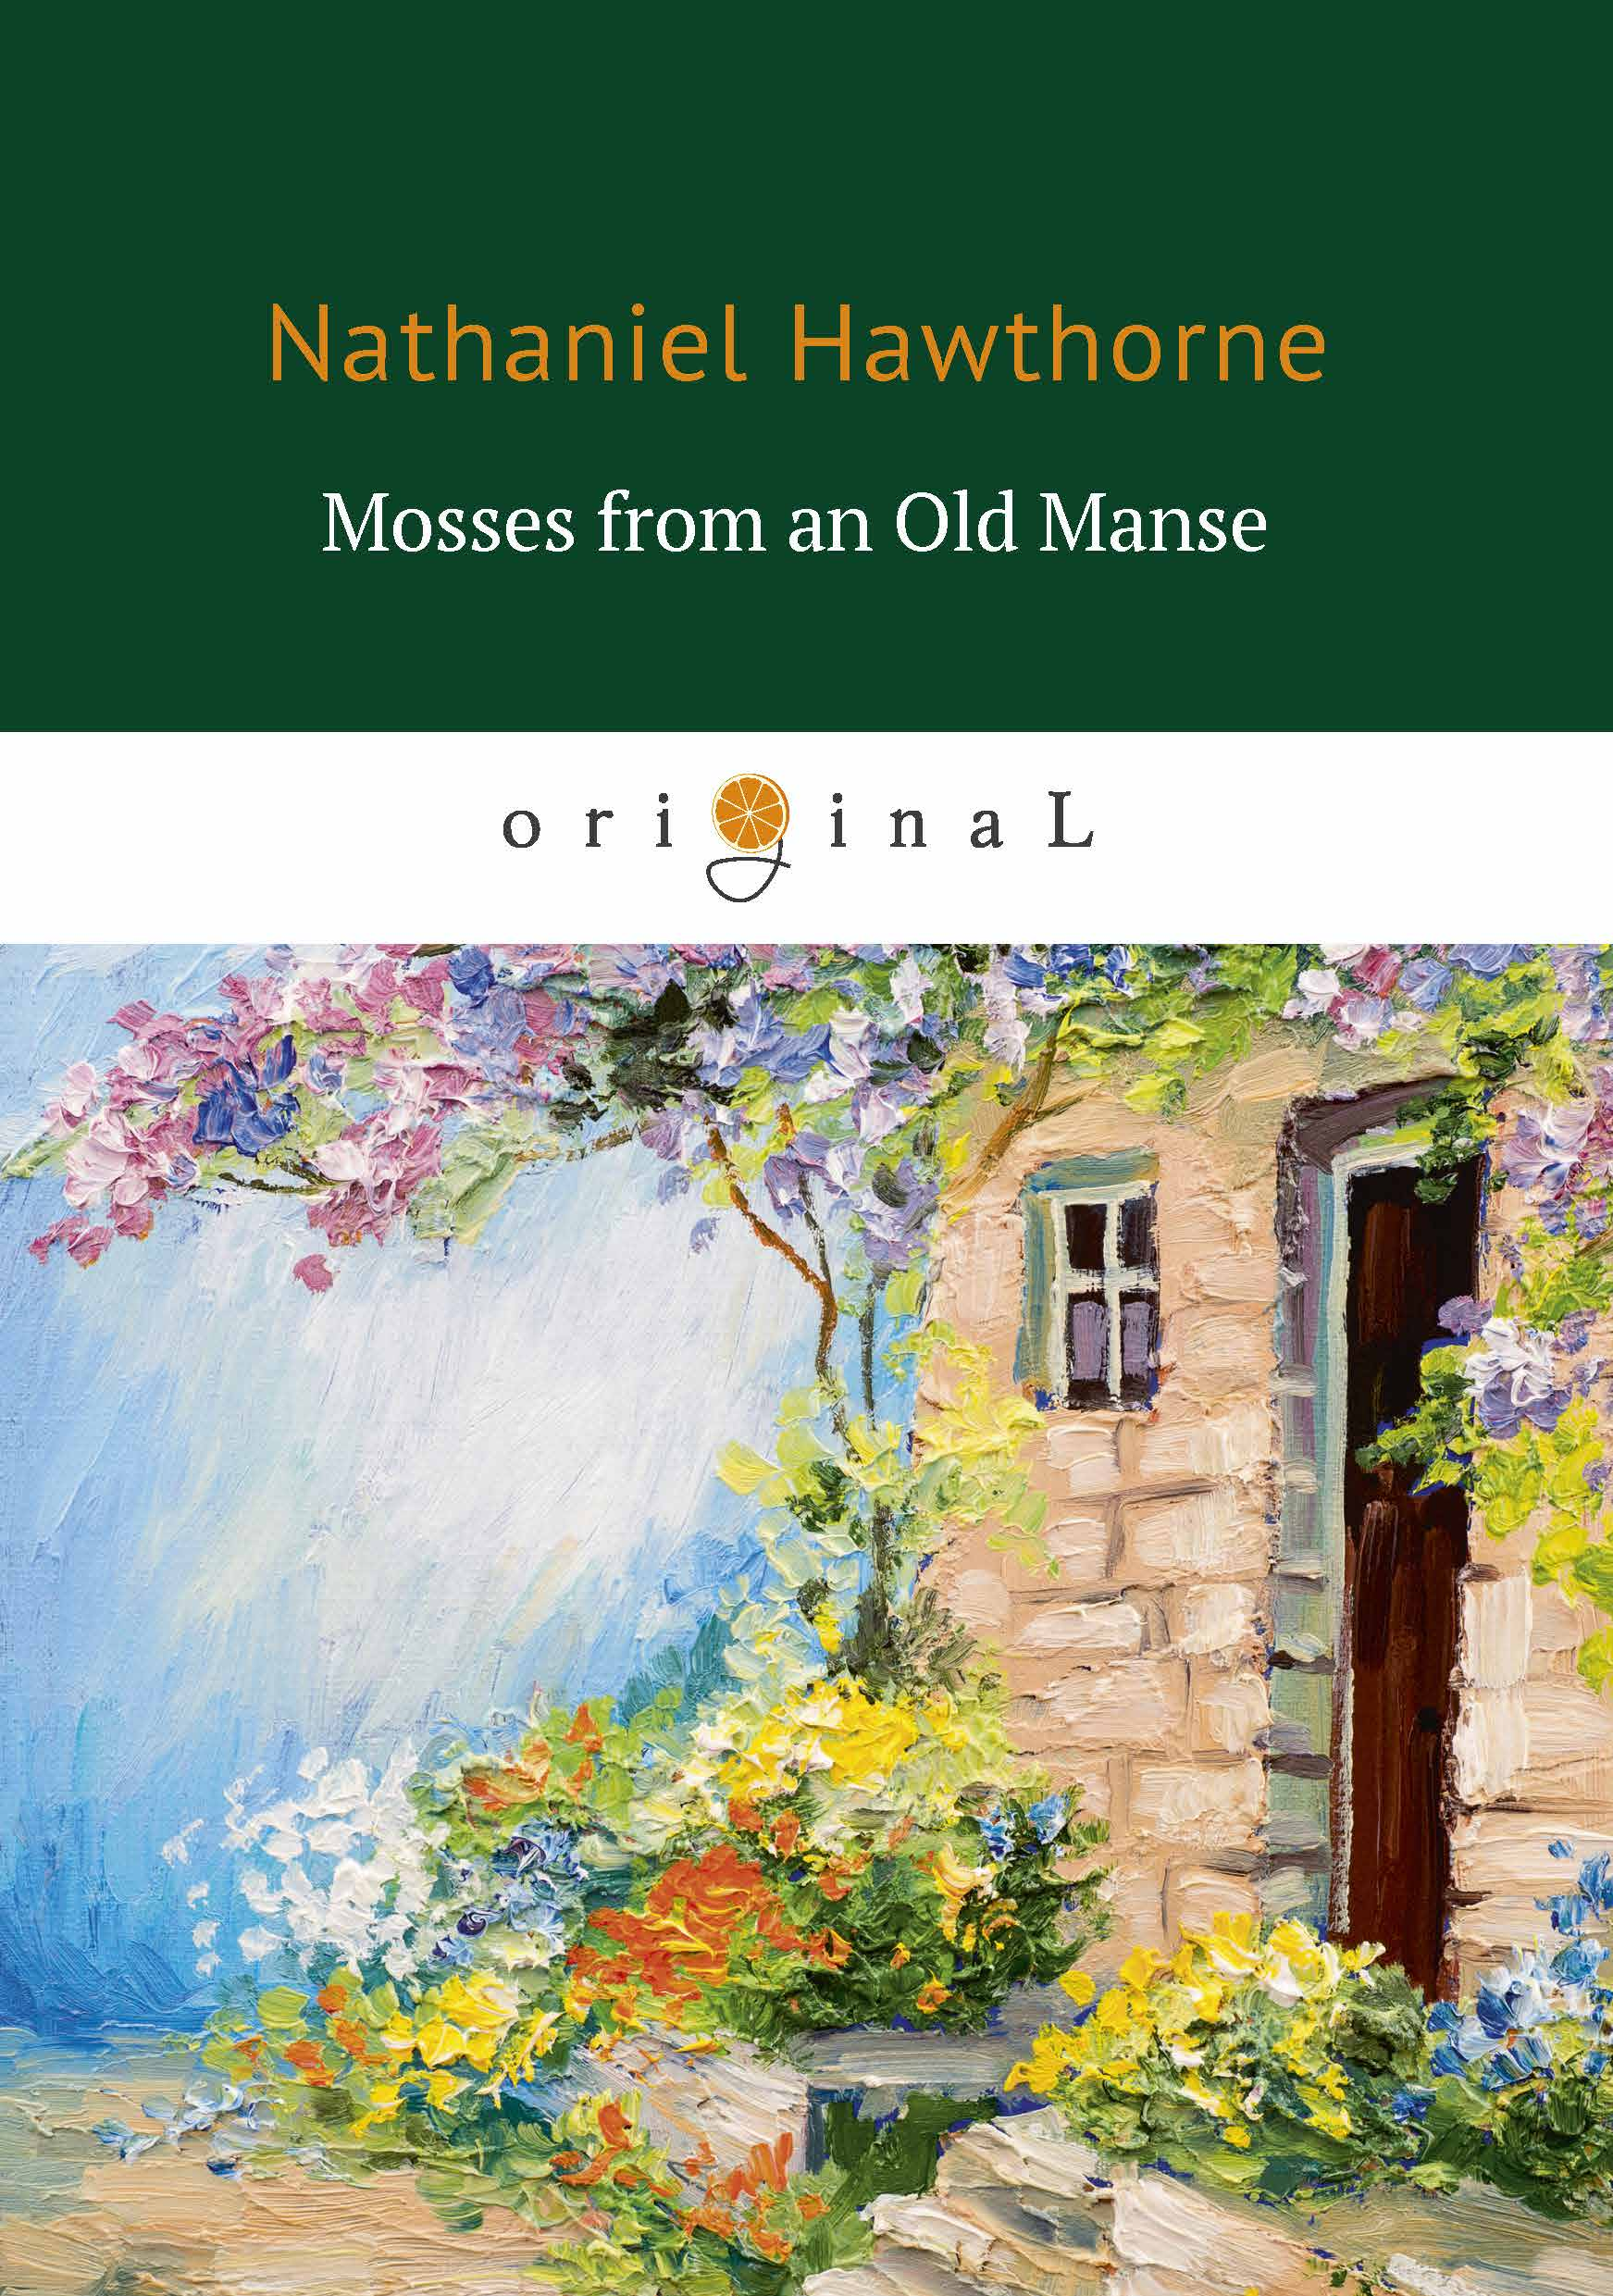 Nathaniel Hawthorne Mosses from an Old Manse